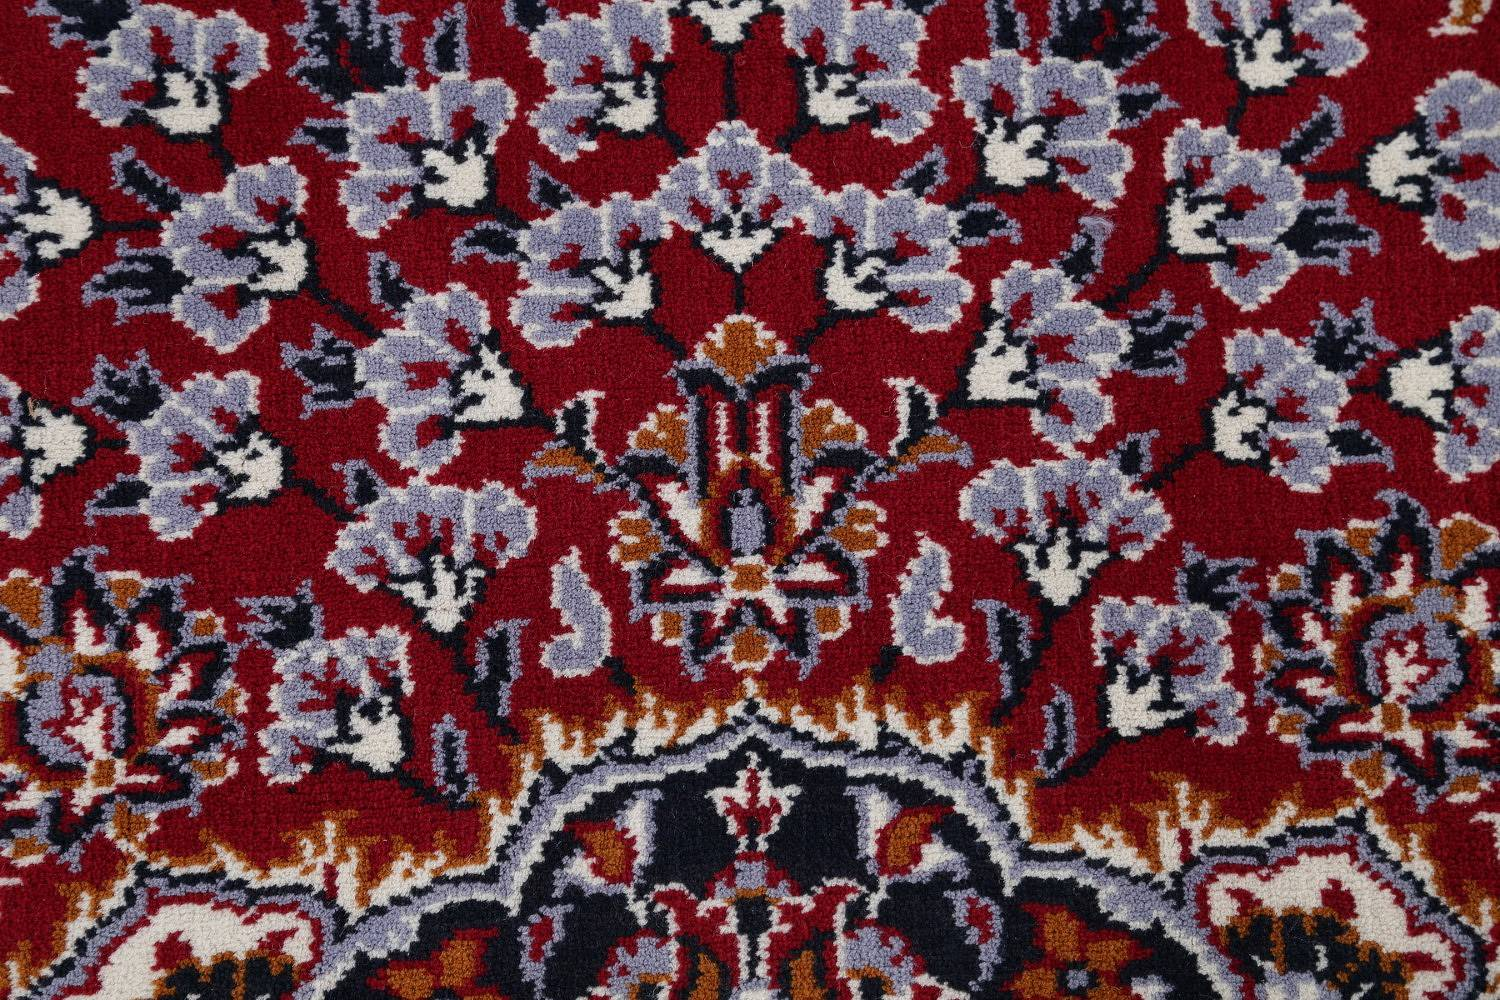 Floral Red Najafabad Isfahan Turkish Oriental Area Rug Wool 9x12